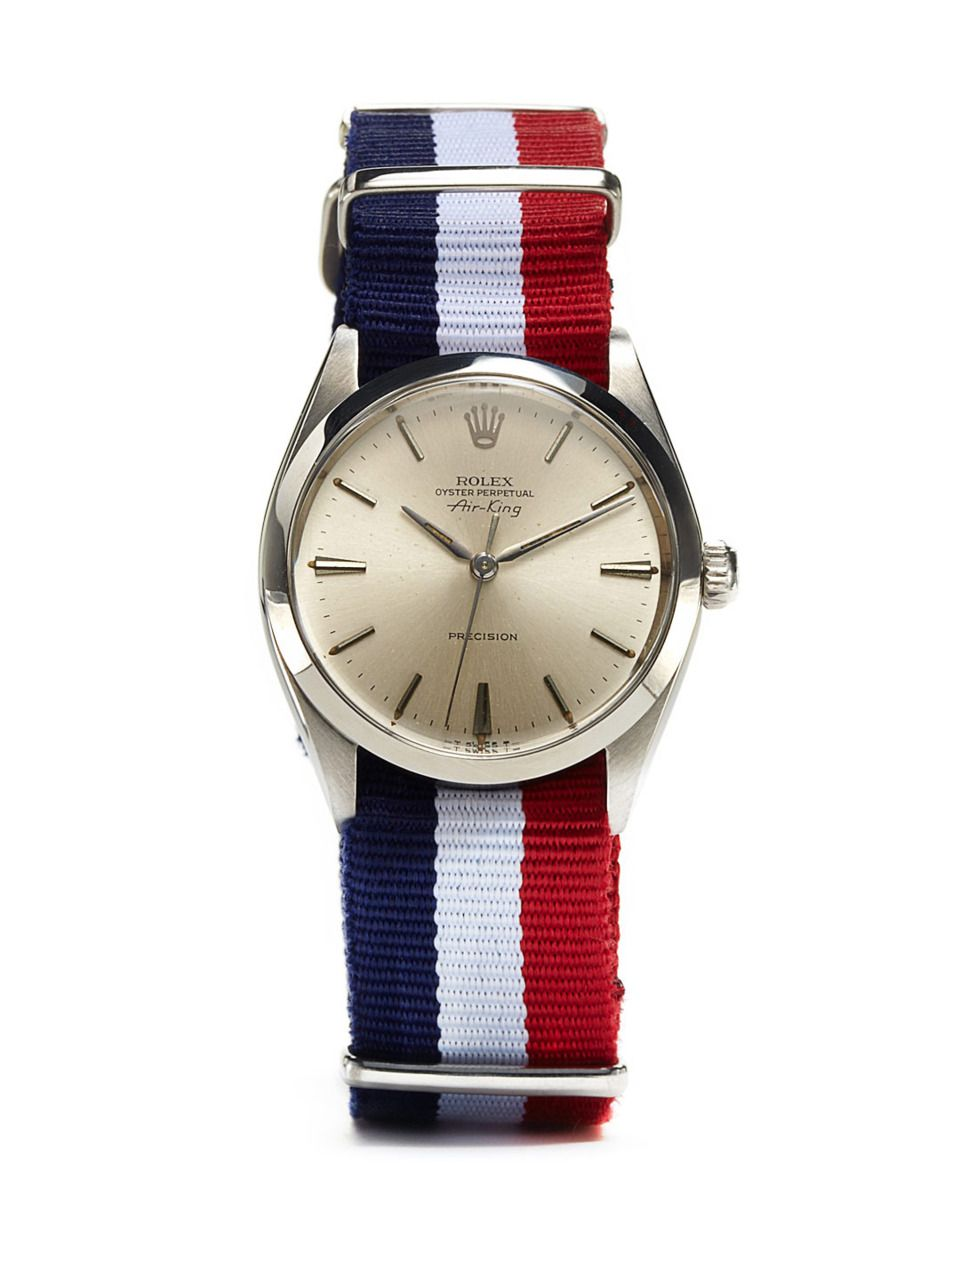 Rolex-Oyster-Perpetual-Air-King-Precision-c.-1966-with-French-Flag-NATO-Strap-at-Park-Bond.jpeg (960×1280)